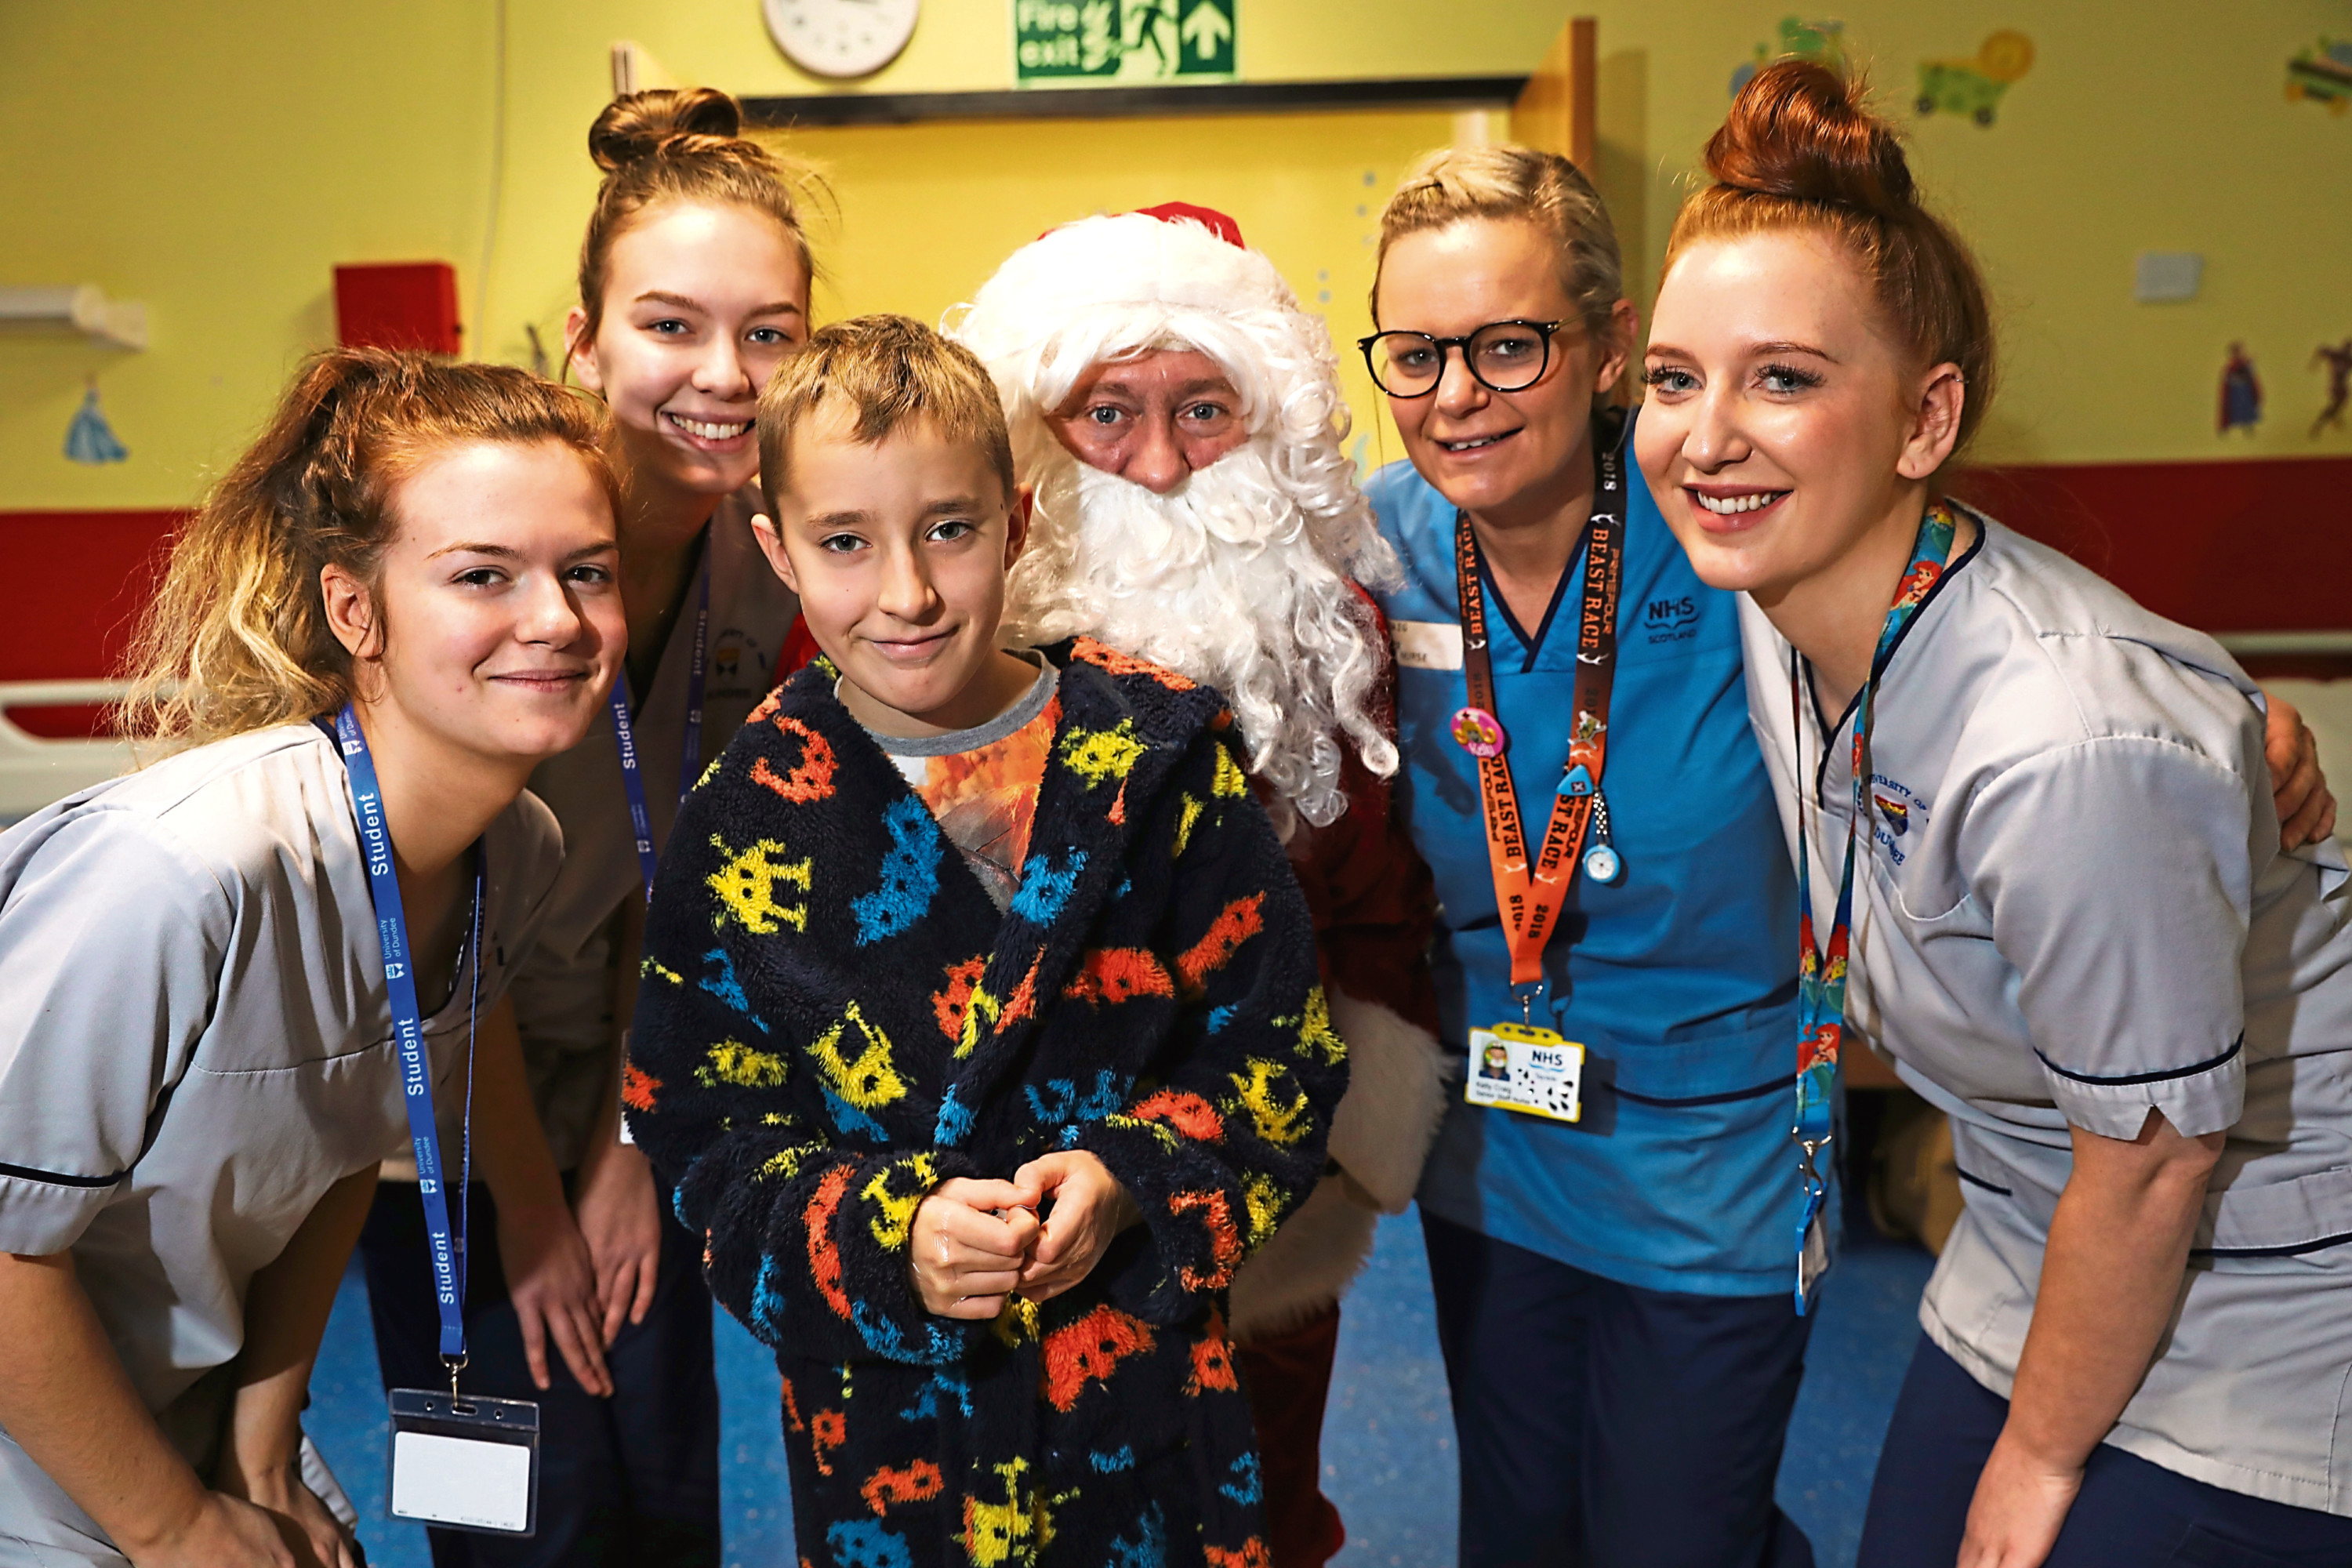 Garry Smith, from Leisure and Culture Dundee, dressed up as Santa with nurses Katie Patton, Gemma McFarlane, Kelly Craig and Amy Corrigan and patient Finlay McKay